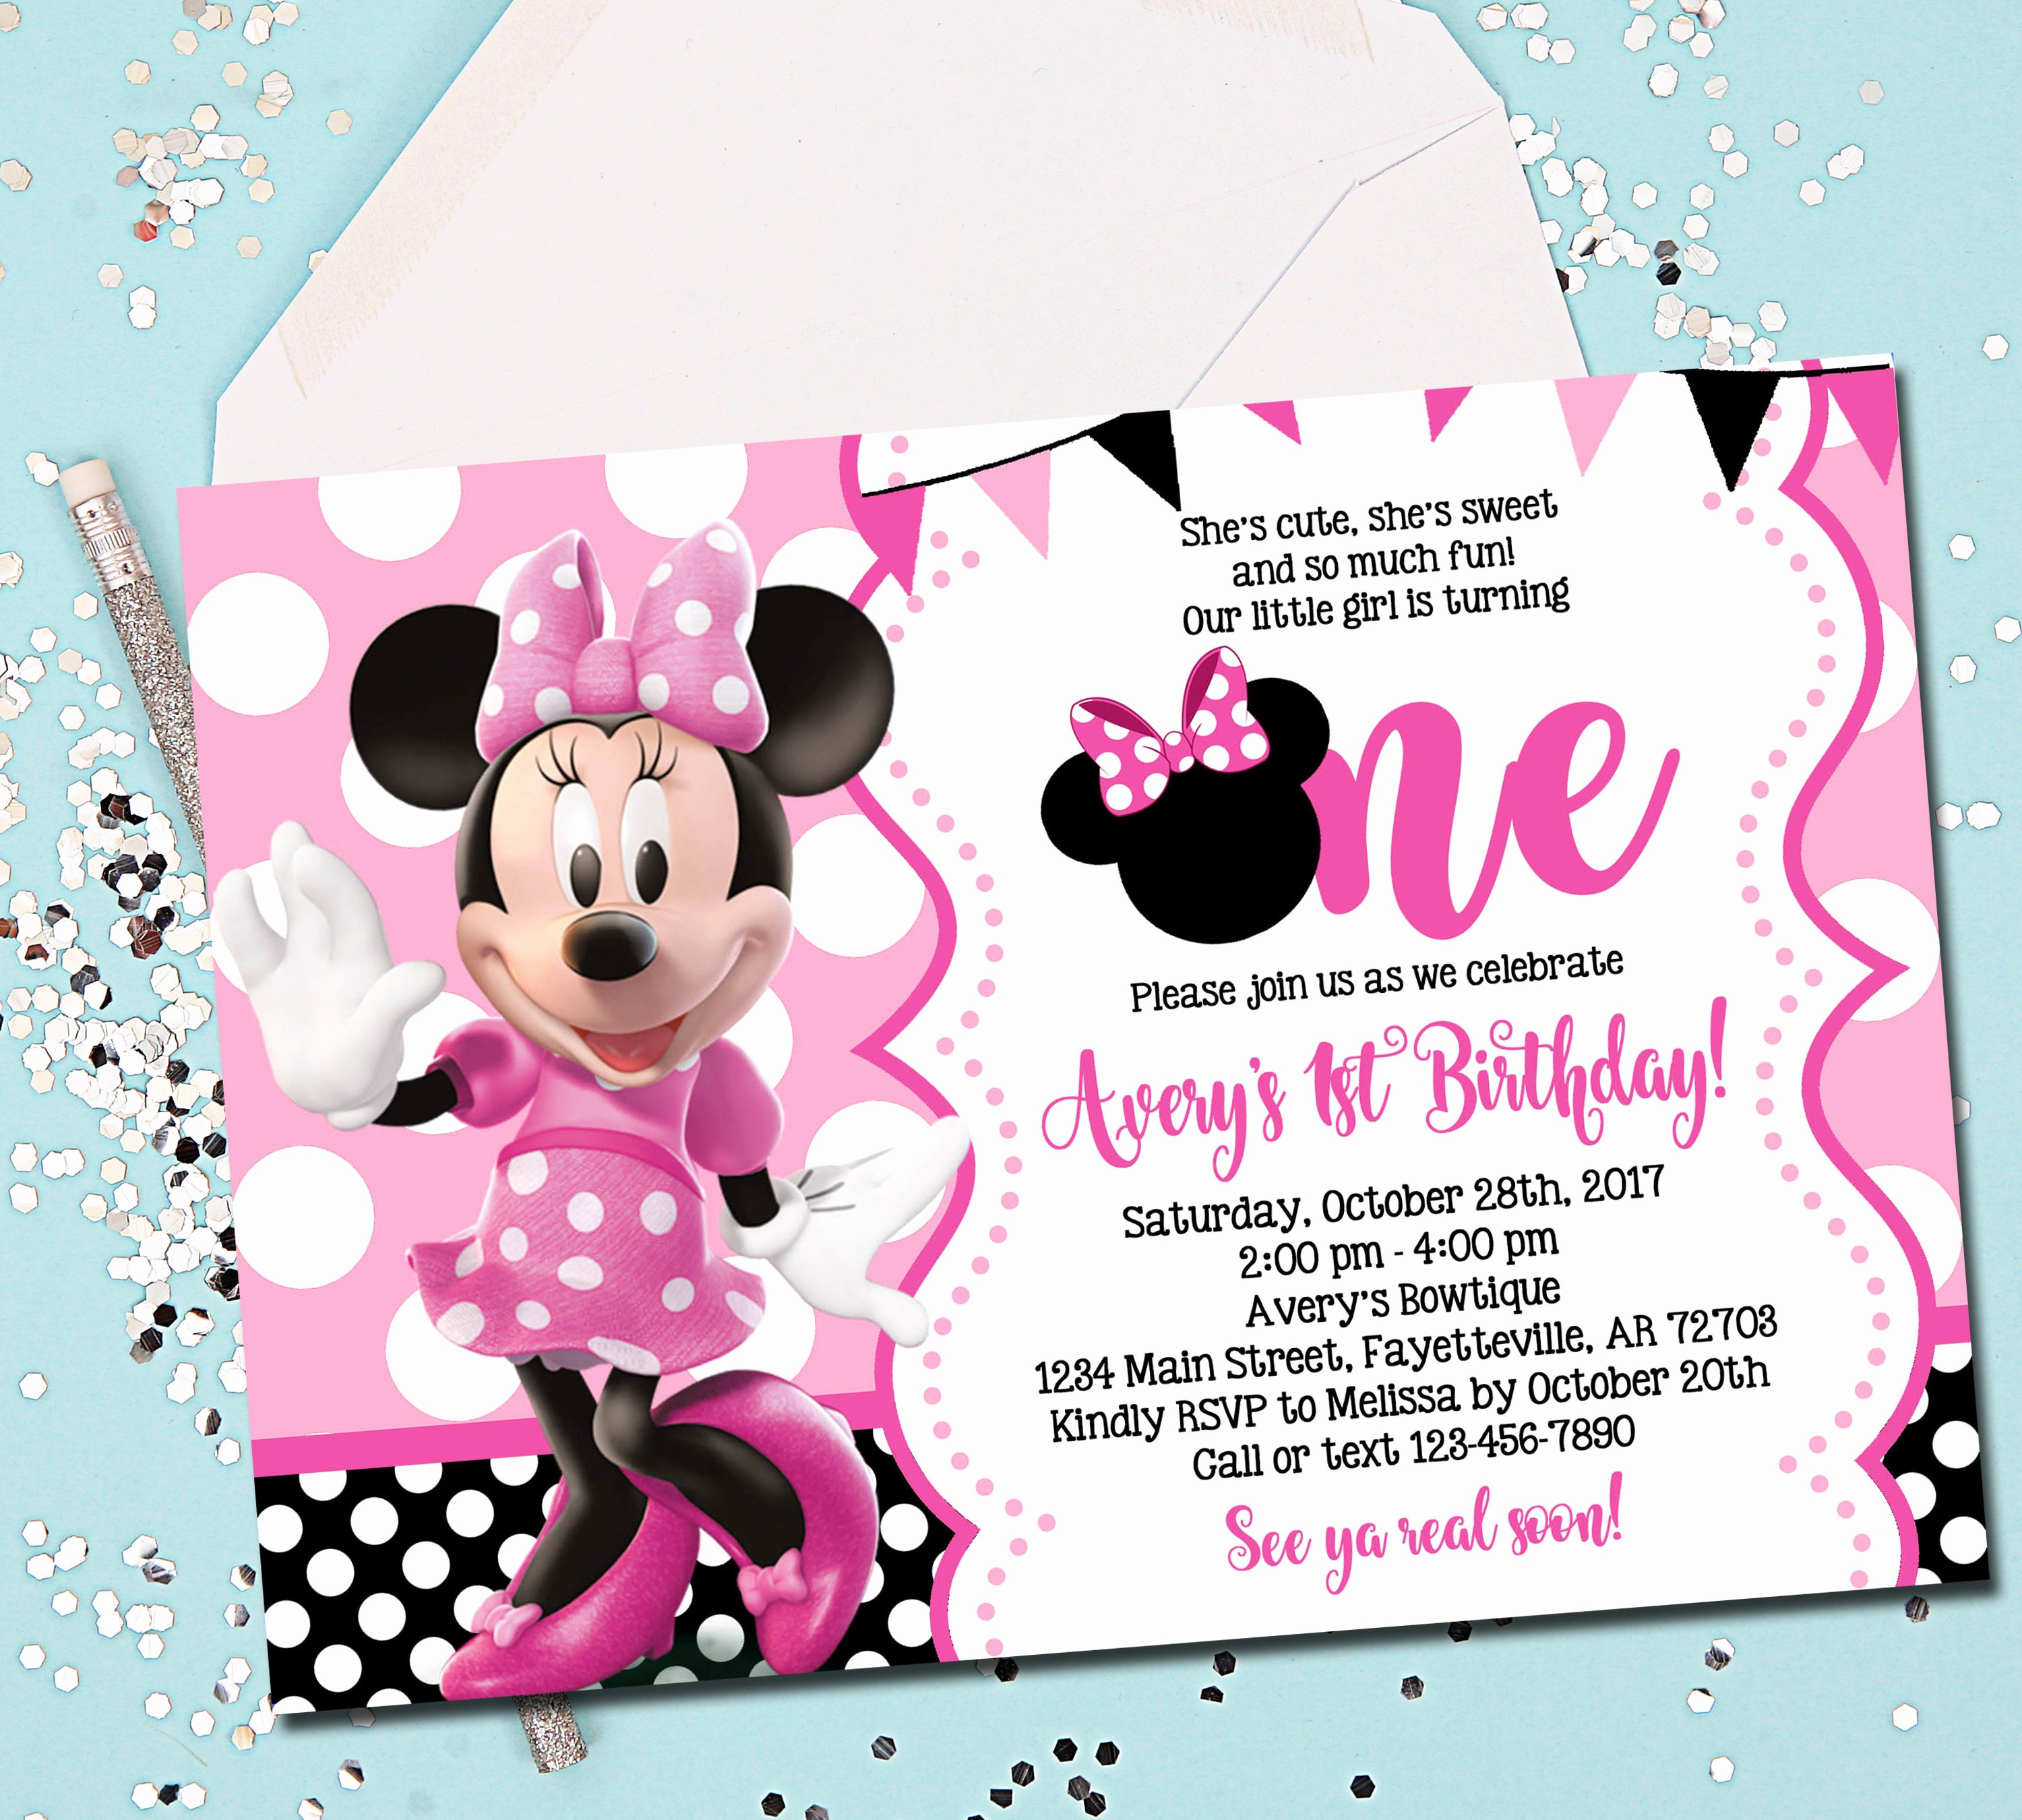 Minnie Mouse Party Invitations Awesome Minnie Mouse Invitation Minnie Mouse Birthday Invitation